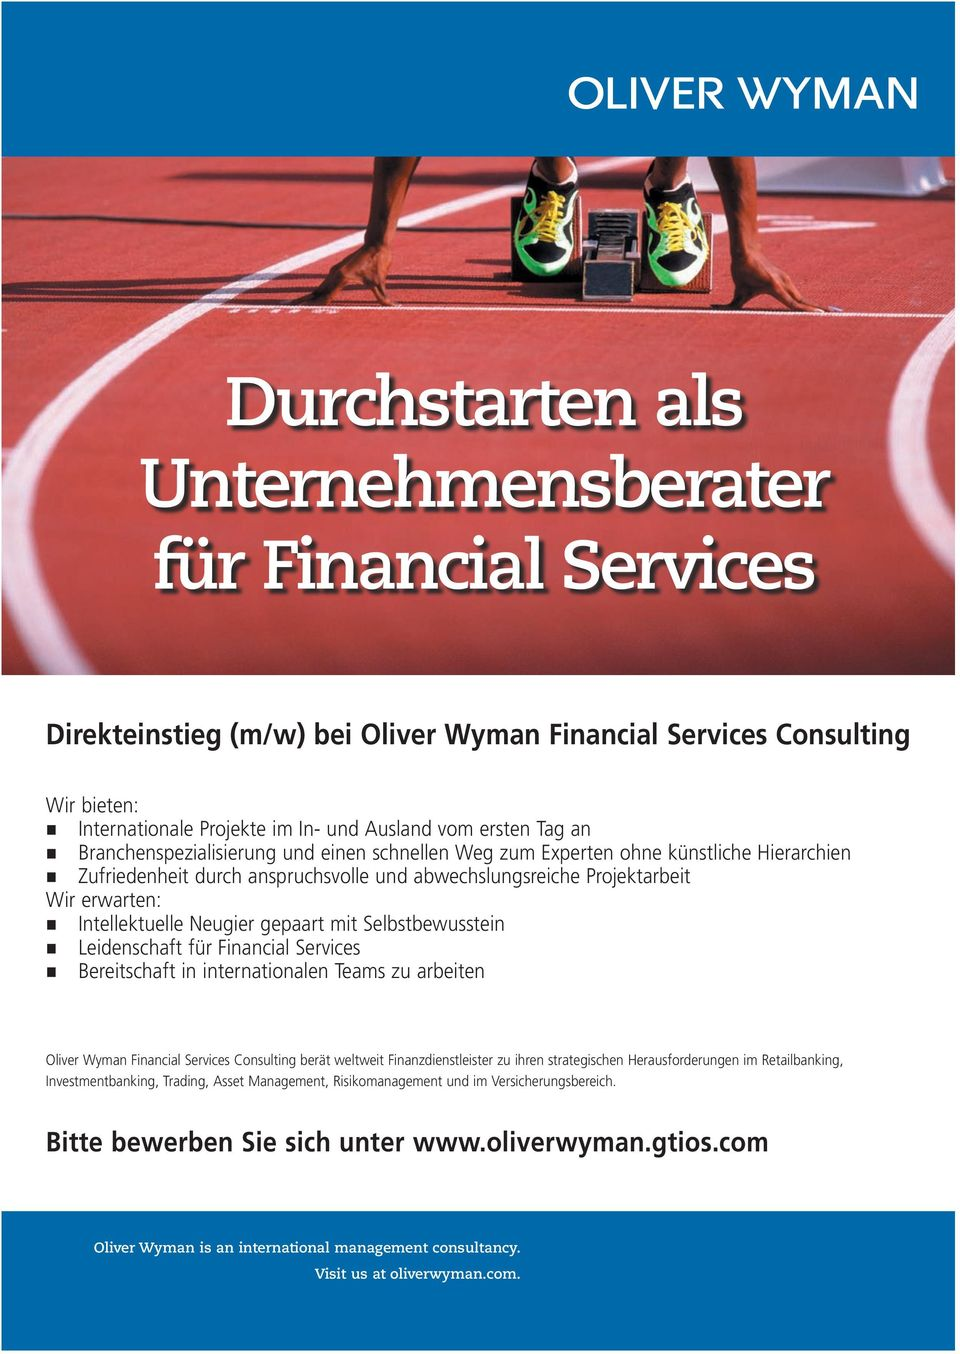 Neugier gepaart mit Selbstbewusstein Leidenschaft für Financial Services Bereitschaft in internationalen Teams zu arbeiten Oliver Wyman Financial Services Consulting berät weltweit